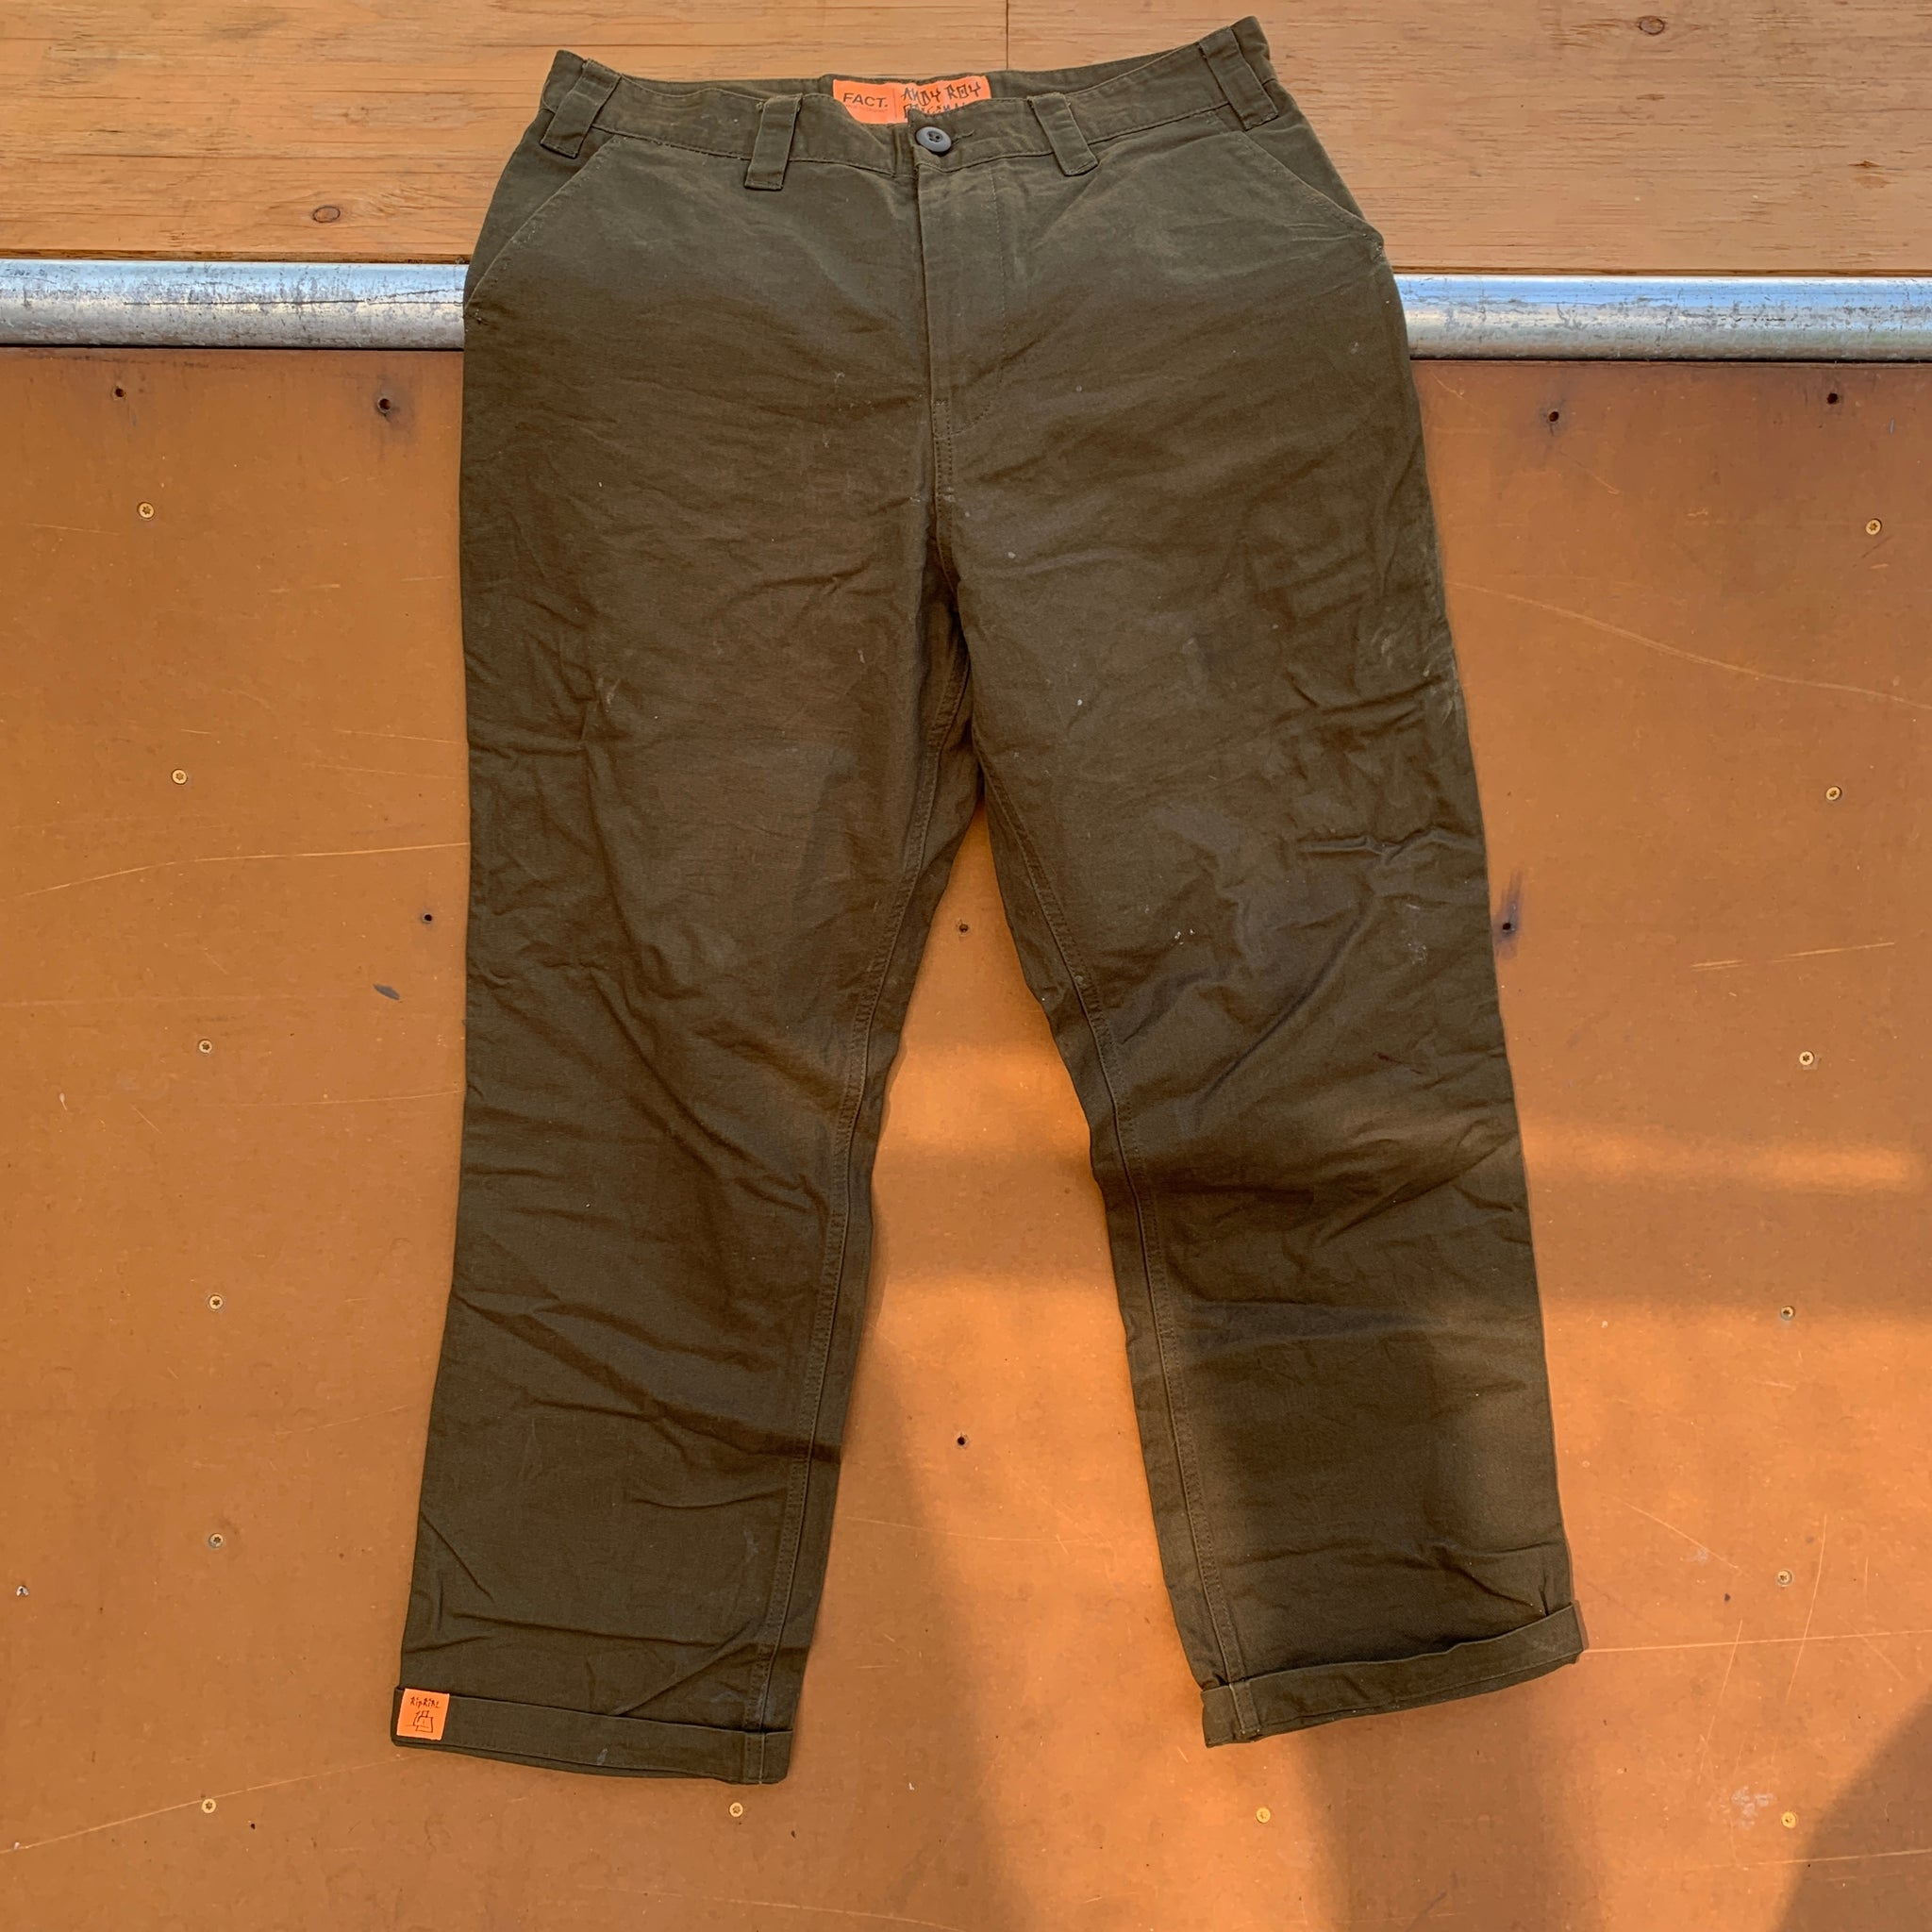 Andy Roy Originals Sample Pants (Only one ever made, size 32X30)